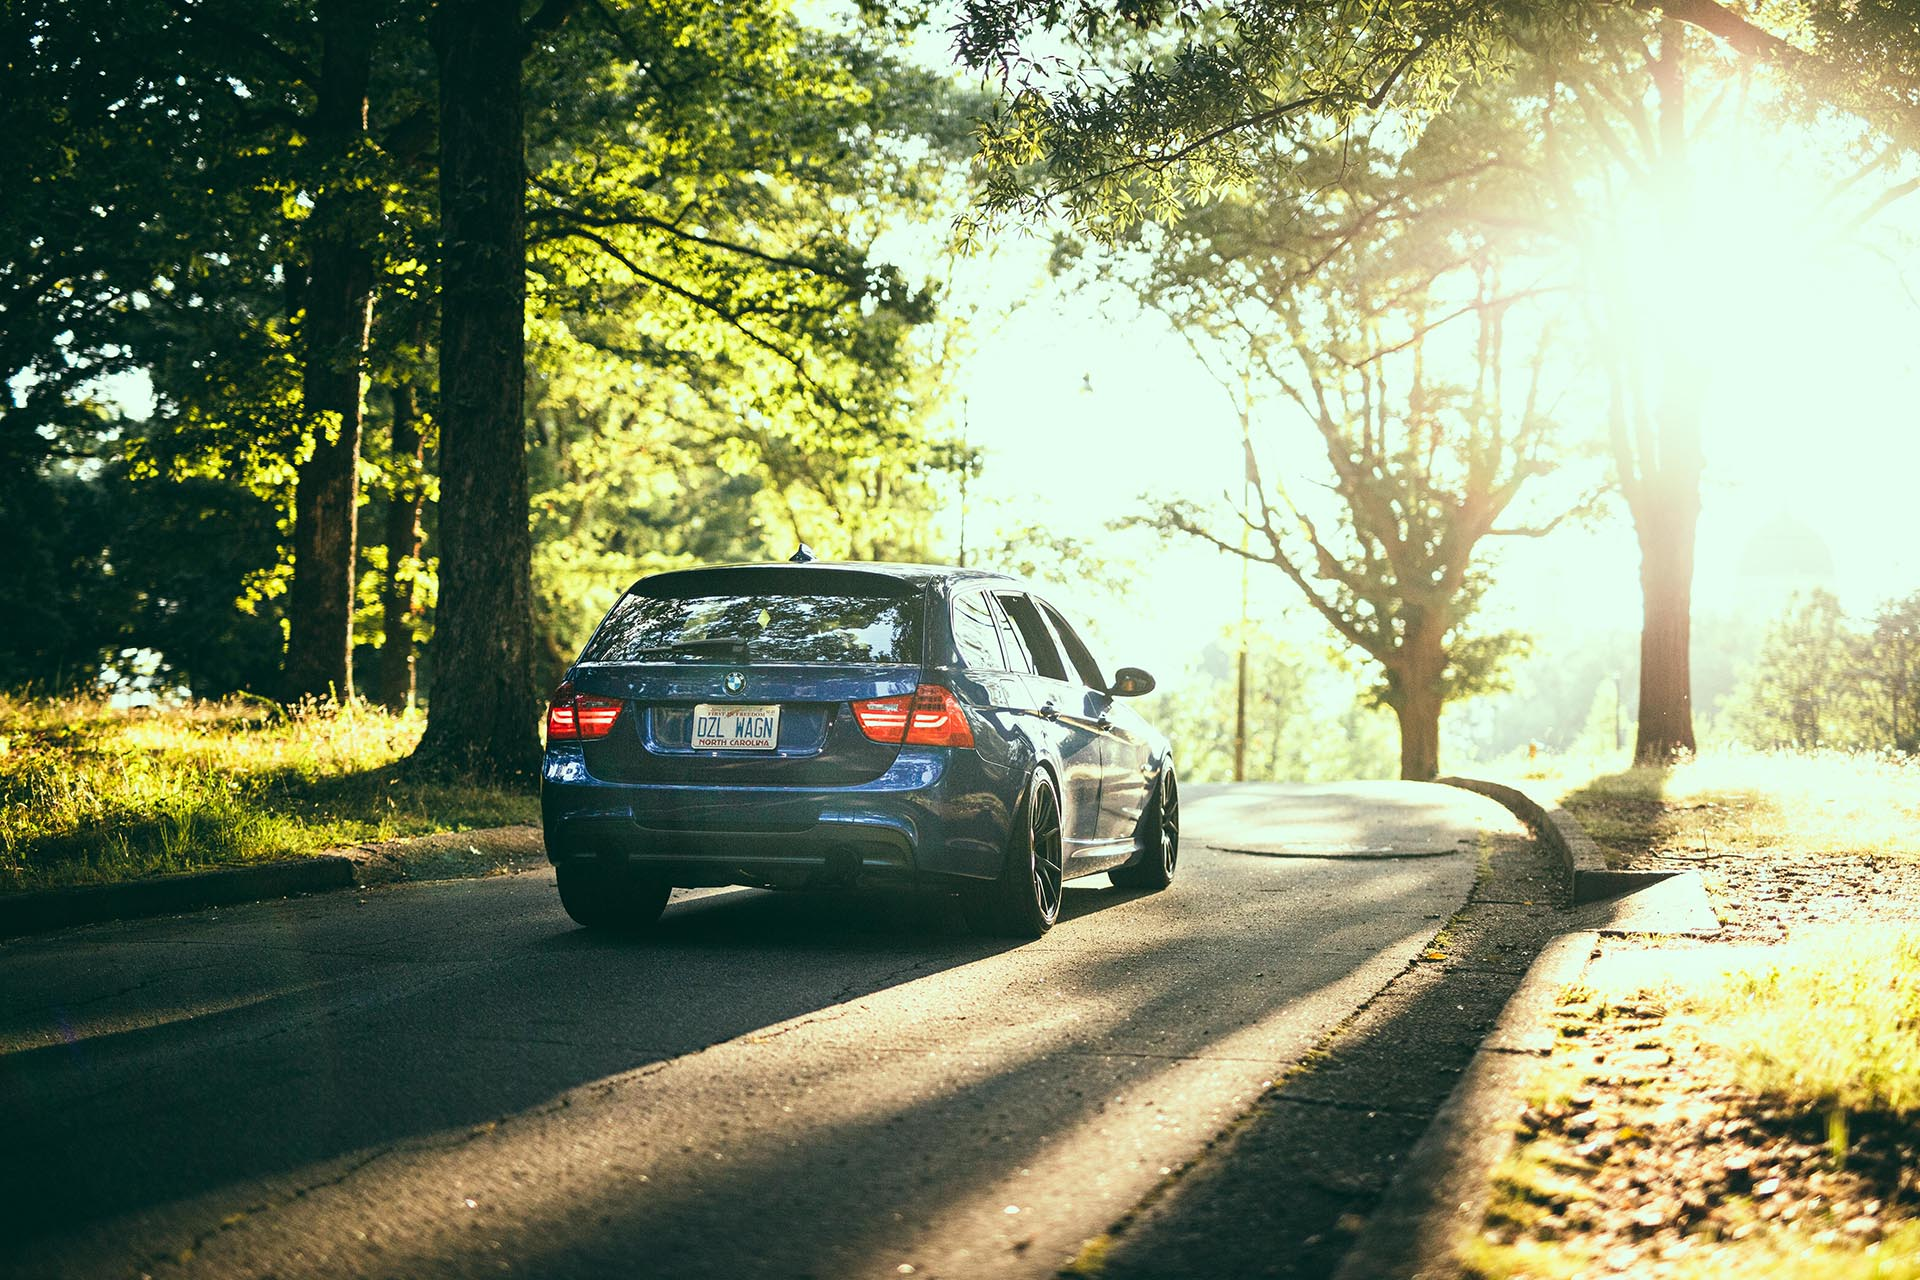 13_BMW E91 335d rear in sunlight